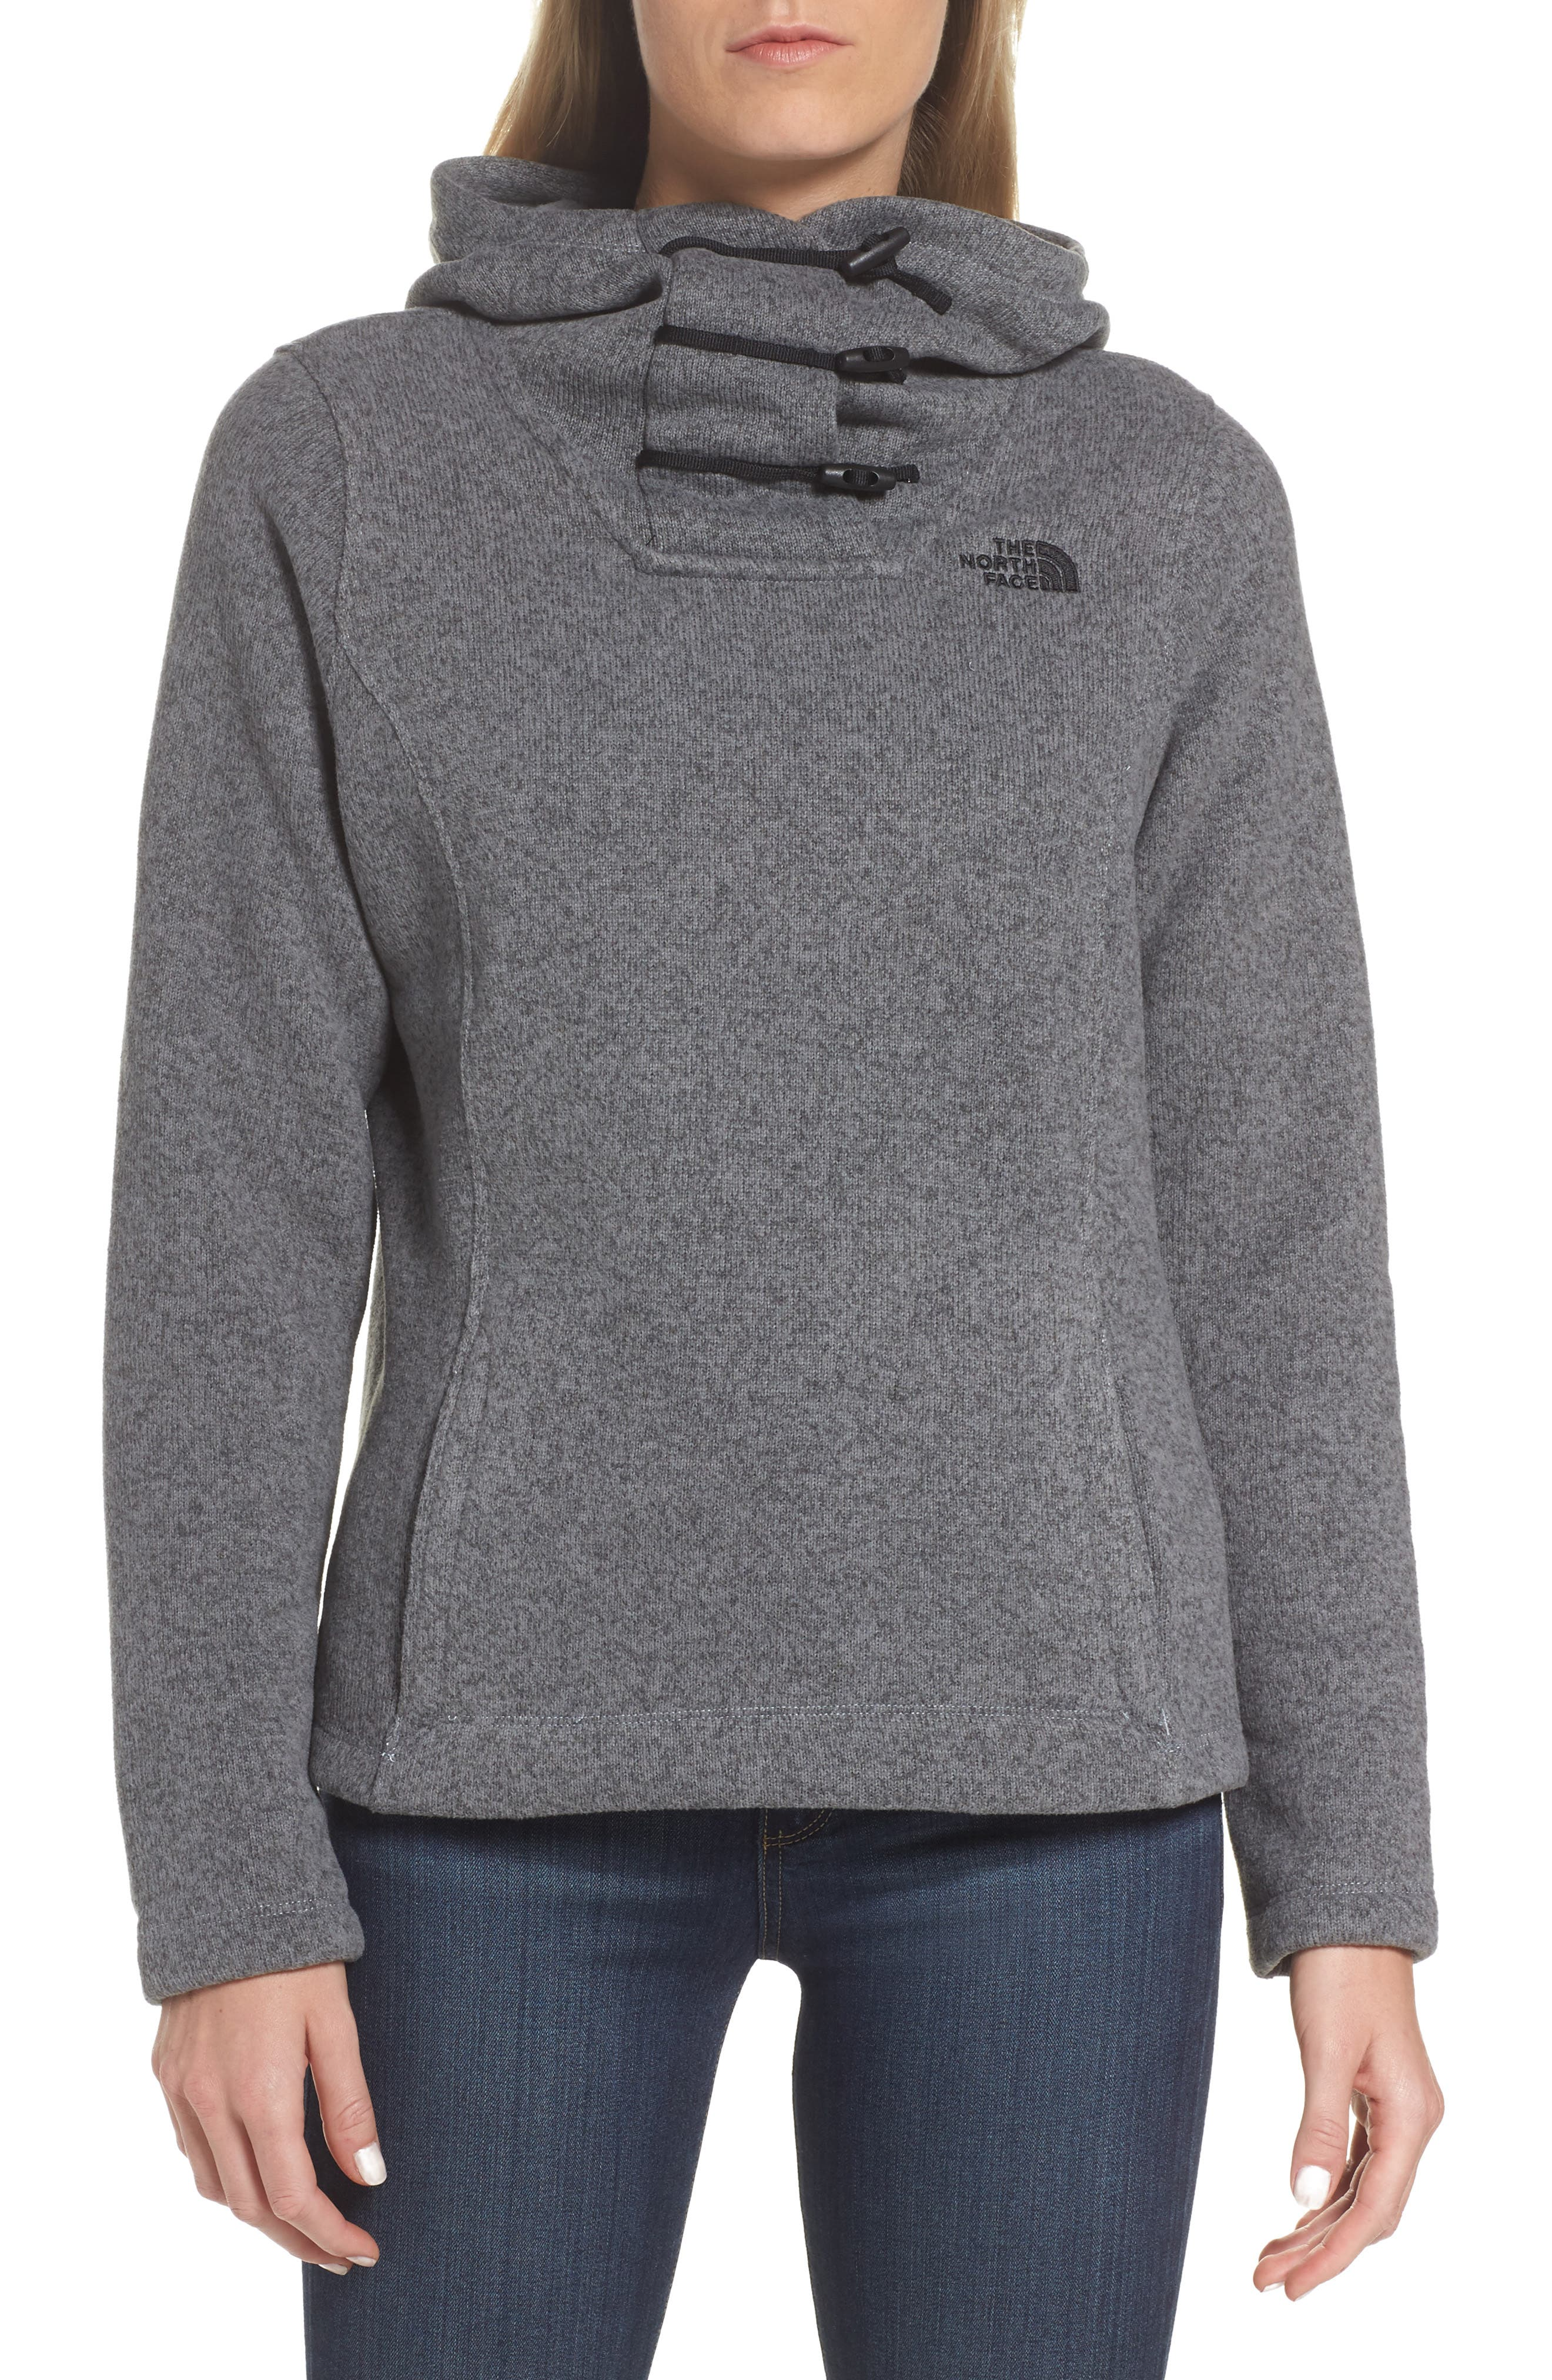 THE NORTH FACE,                             Crescent Hoodie,                             Main thumbnail 1, color,                             030